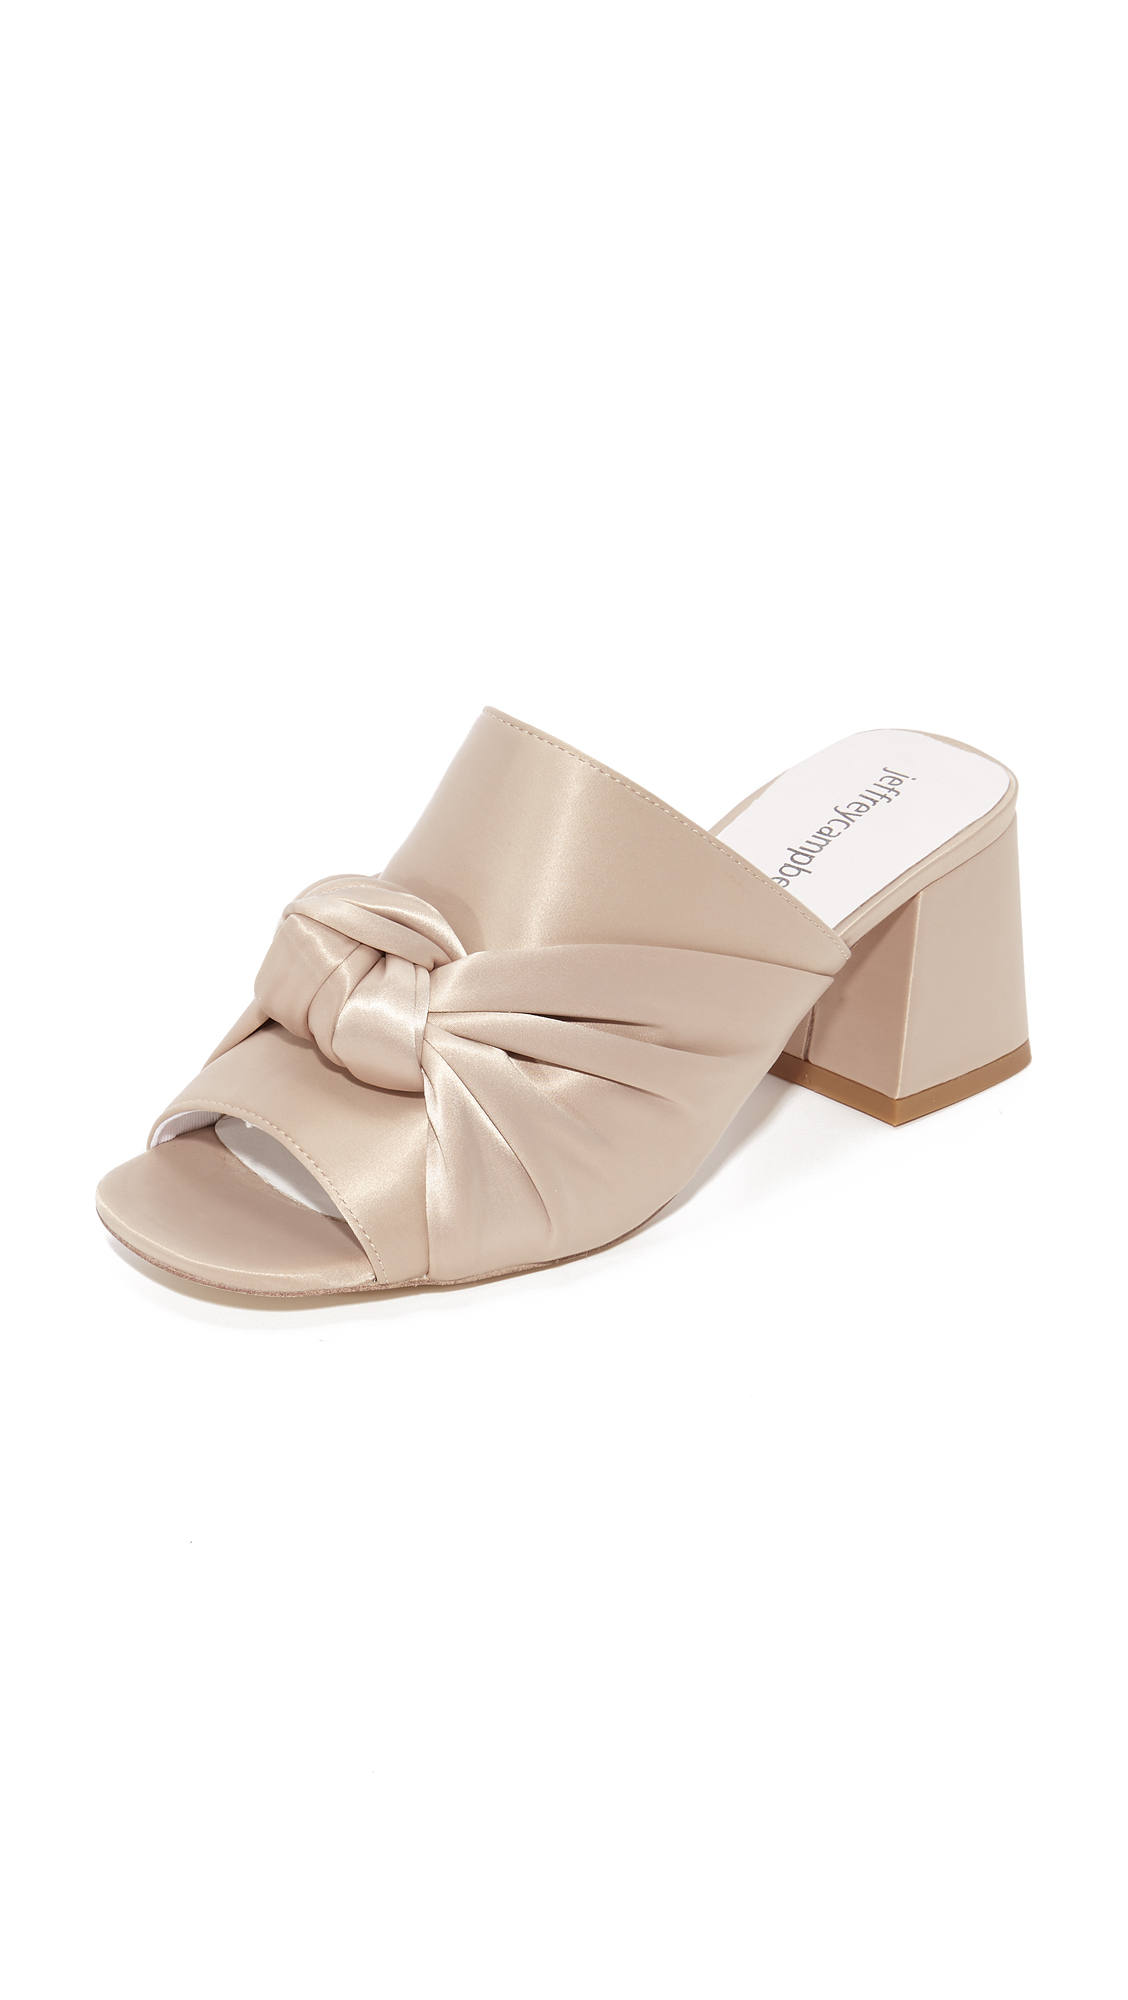 Jeffrey Campbell Onora Mules - Beige